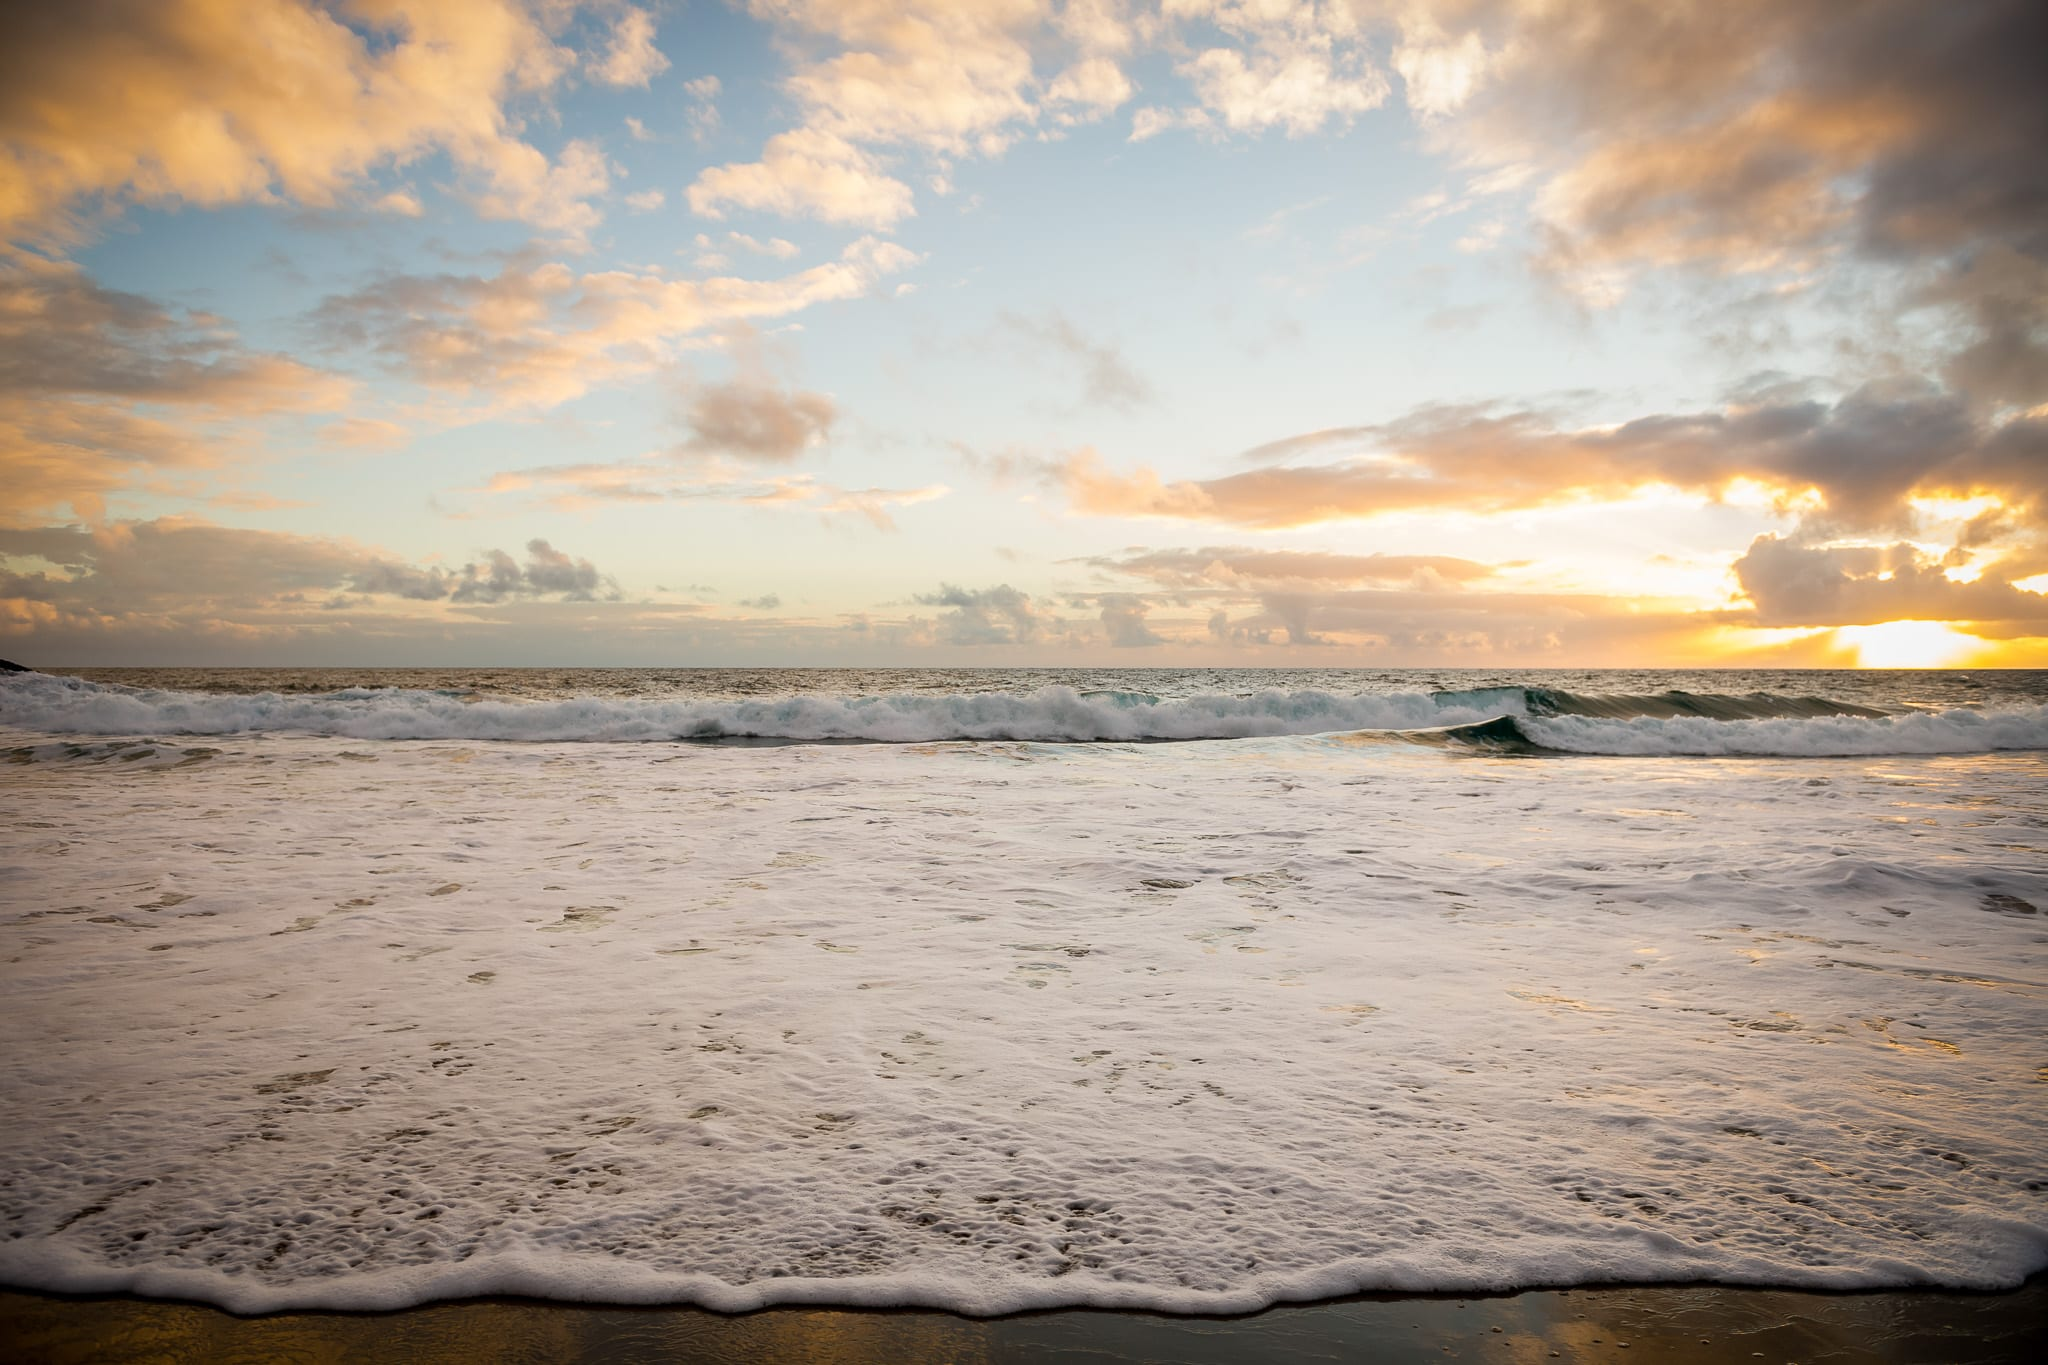 Sunset facing the Pacific Ocean from Aliso Beach in Laguna Beach, California with a colorful skies and long waves crashing in the foreground